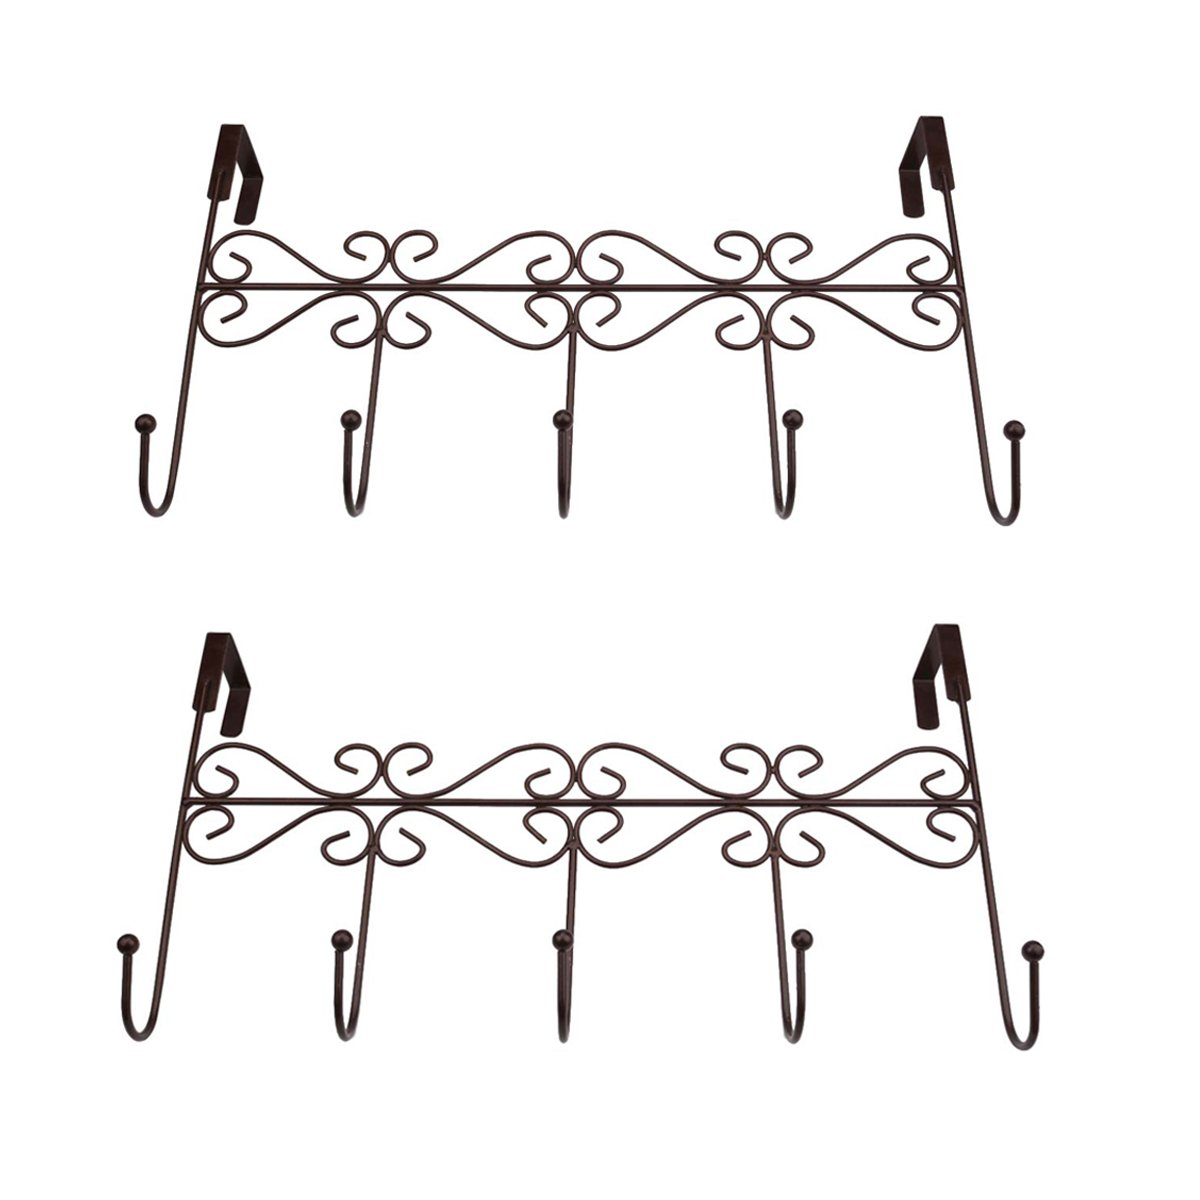 Xingyou Over Door Clothes Hanger with 5 Hooks Decorative Metal Hanger for Coats, Hats, Towels XY-H-002 (Max Bearing Weight: 10kg/22 lbs) Coffee (2)